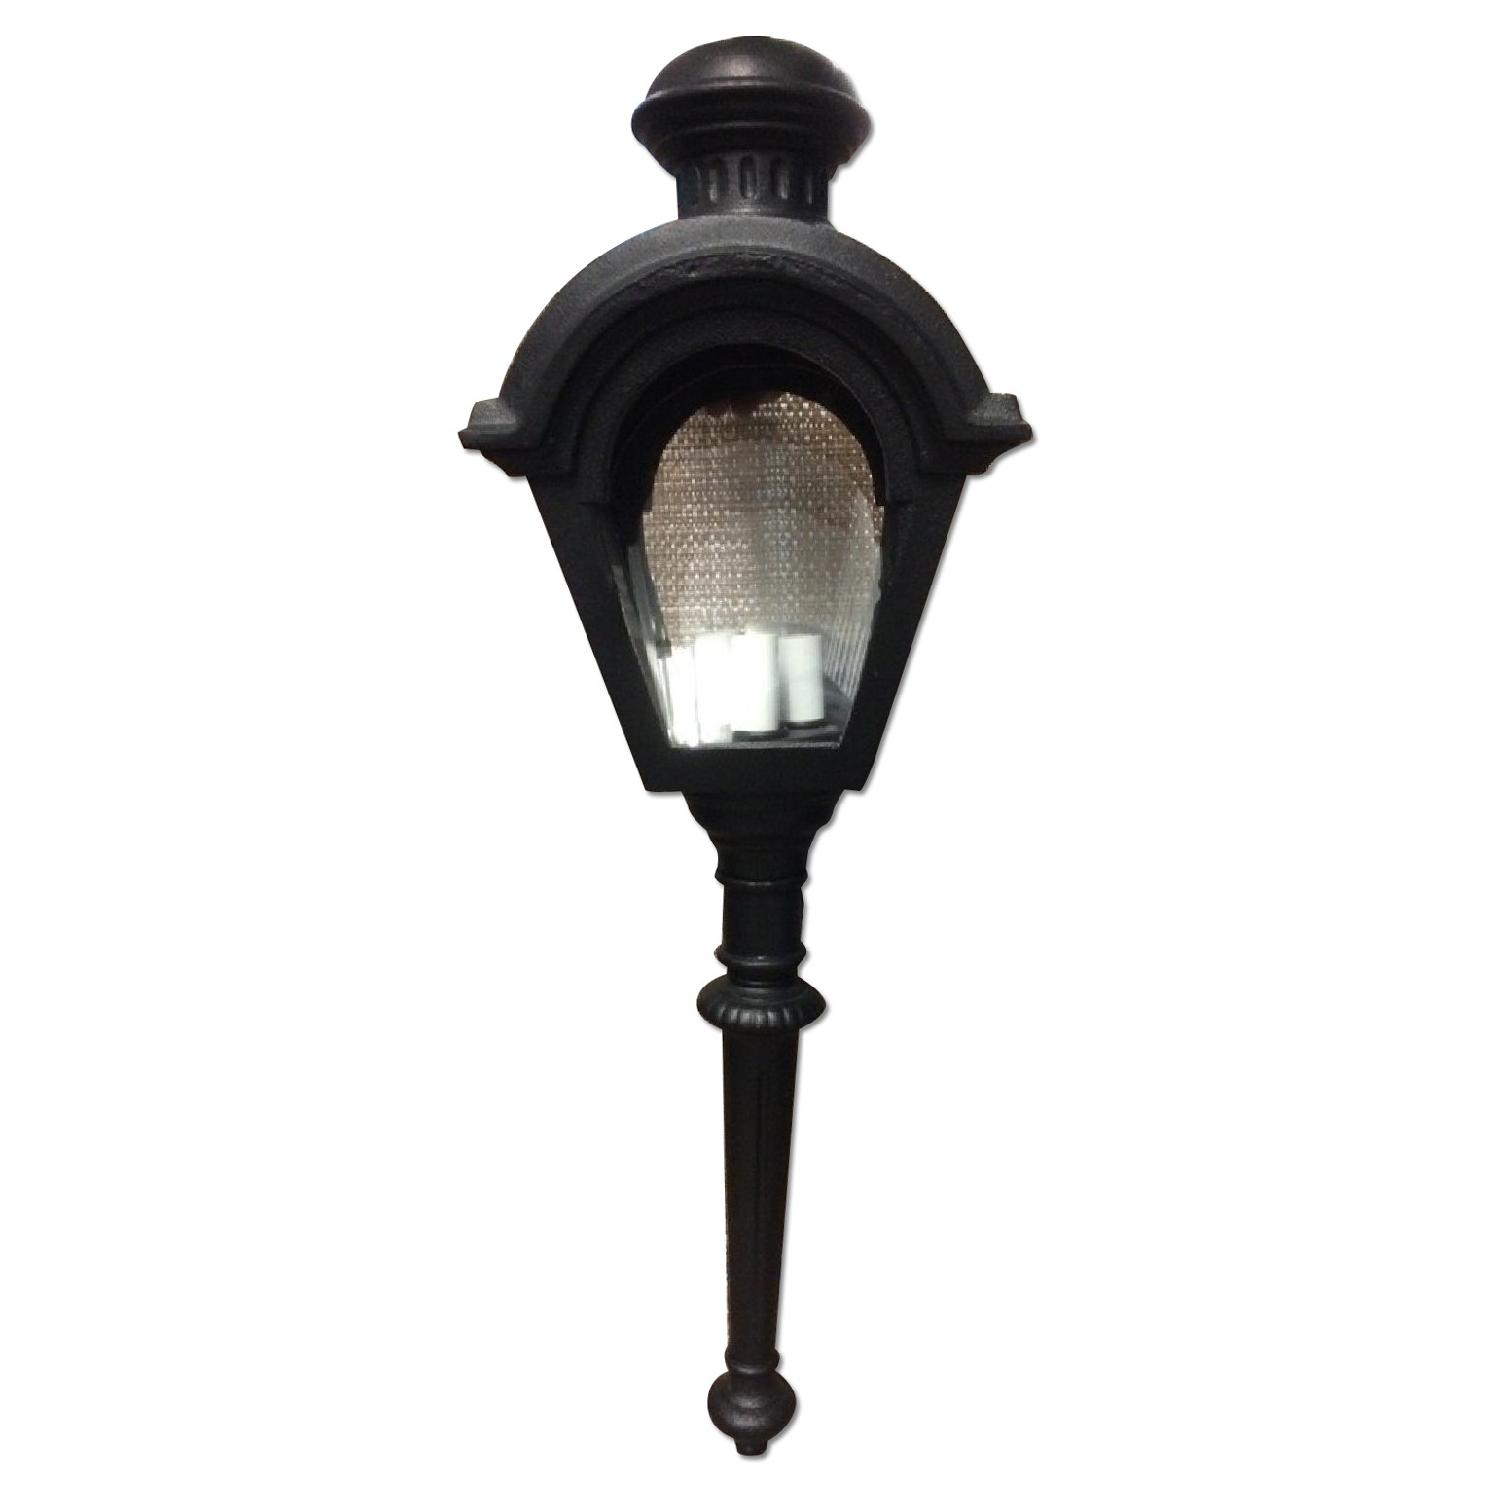 Hinkley Lighting Black Wall Torch wi/ Tail